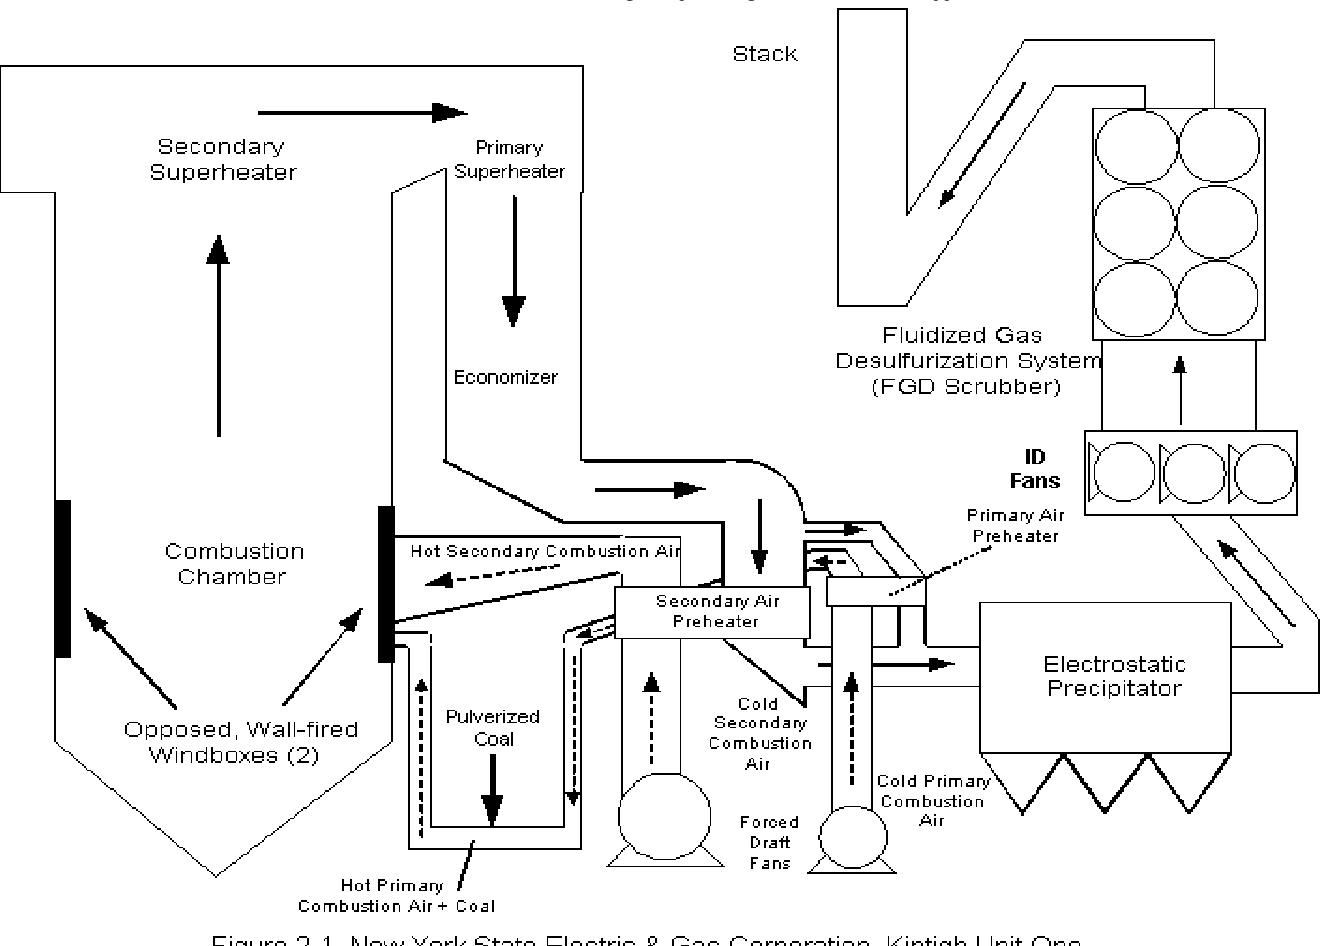 Water Chemistry Schematic Diagram on